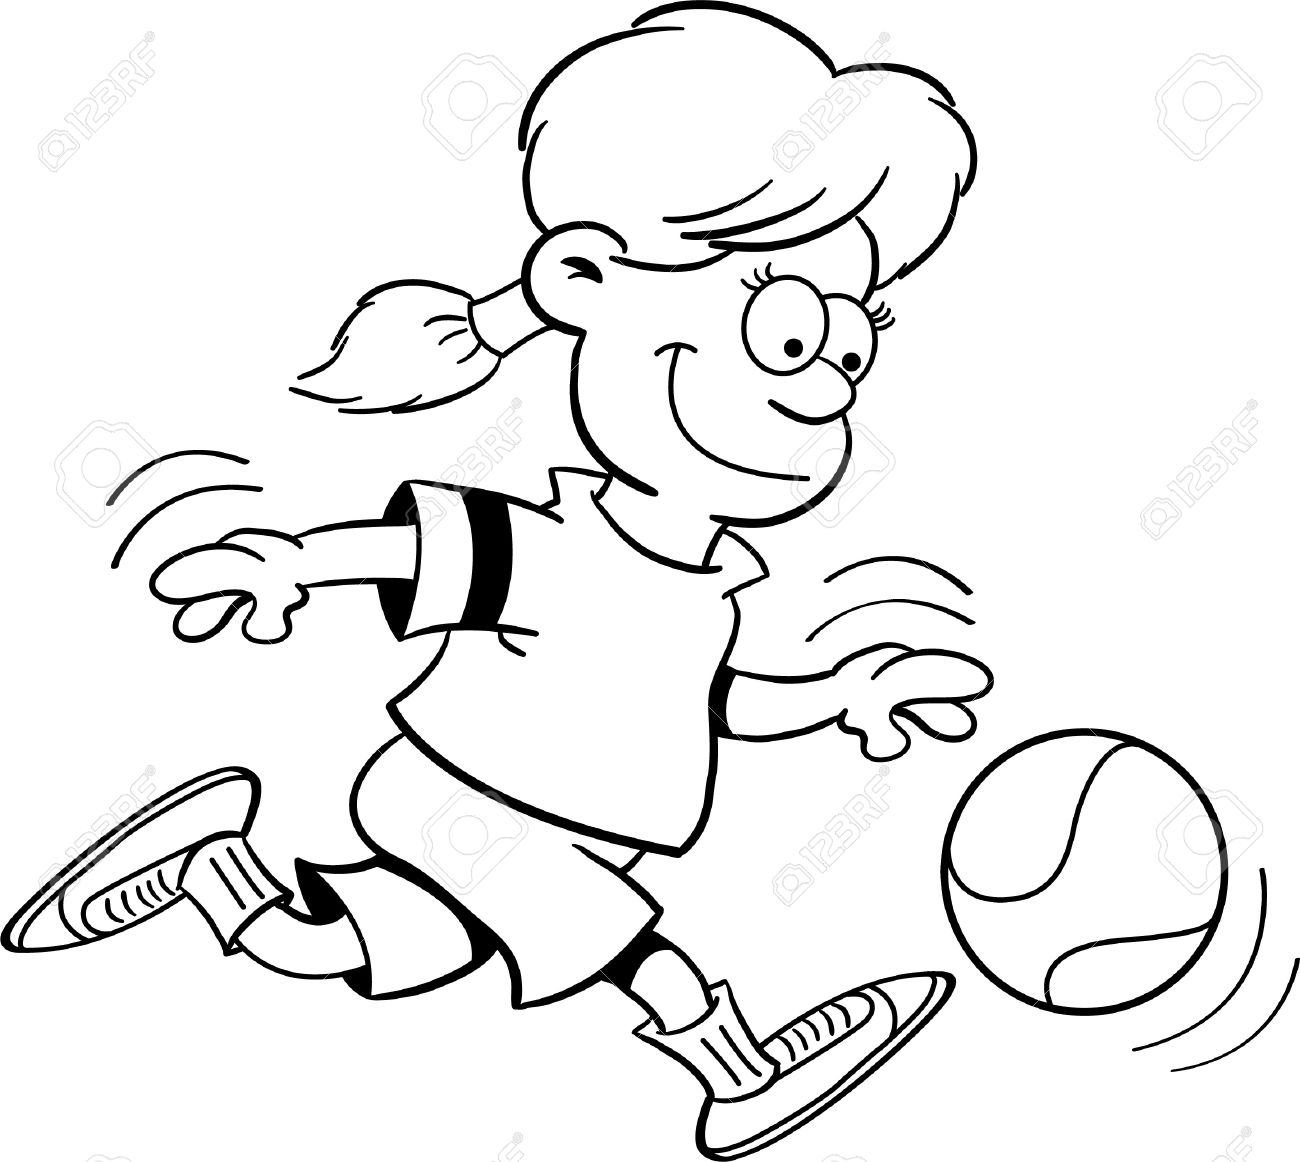 Black And White Illustration Of A Girl Playing Basketball Royalty.